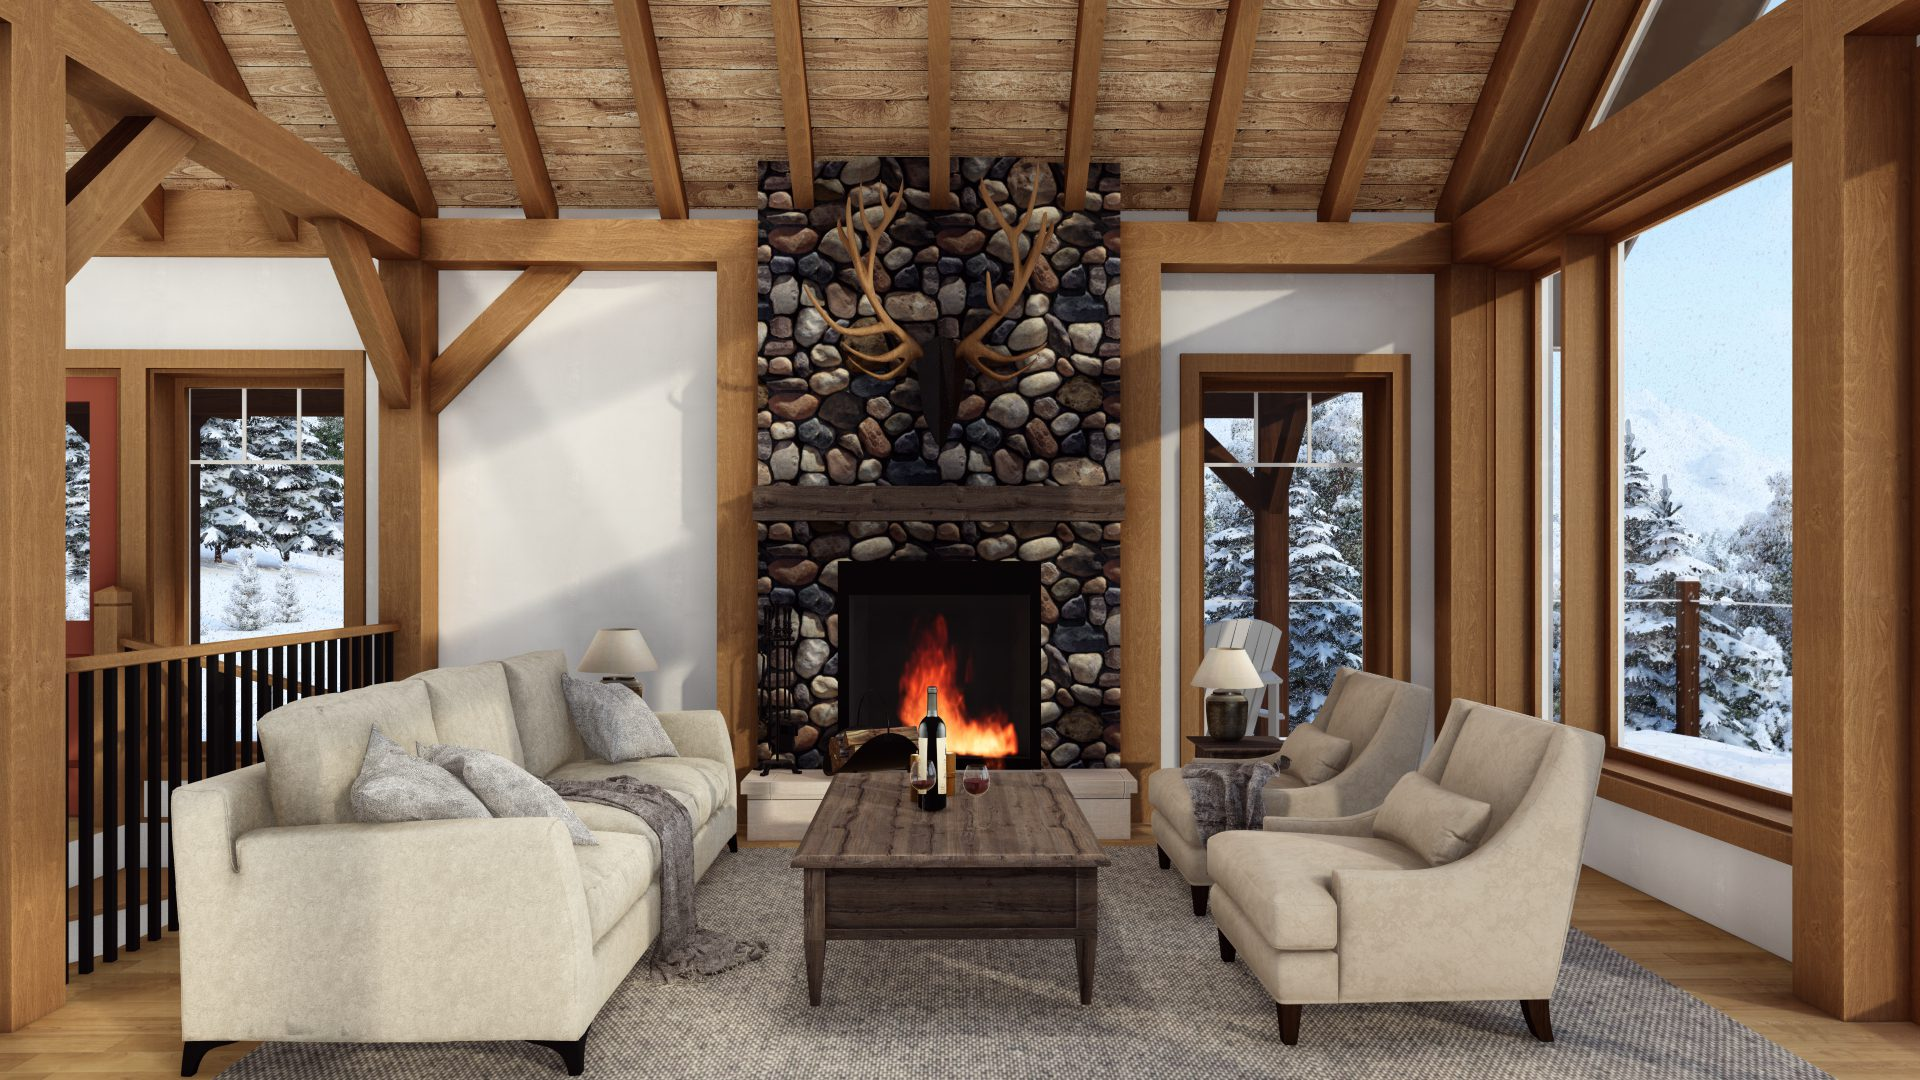 Timber Frame Open Concept House Plans   The Rouge   Normerica   Interior, Living Room, Fireplace